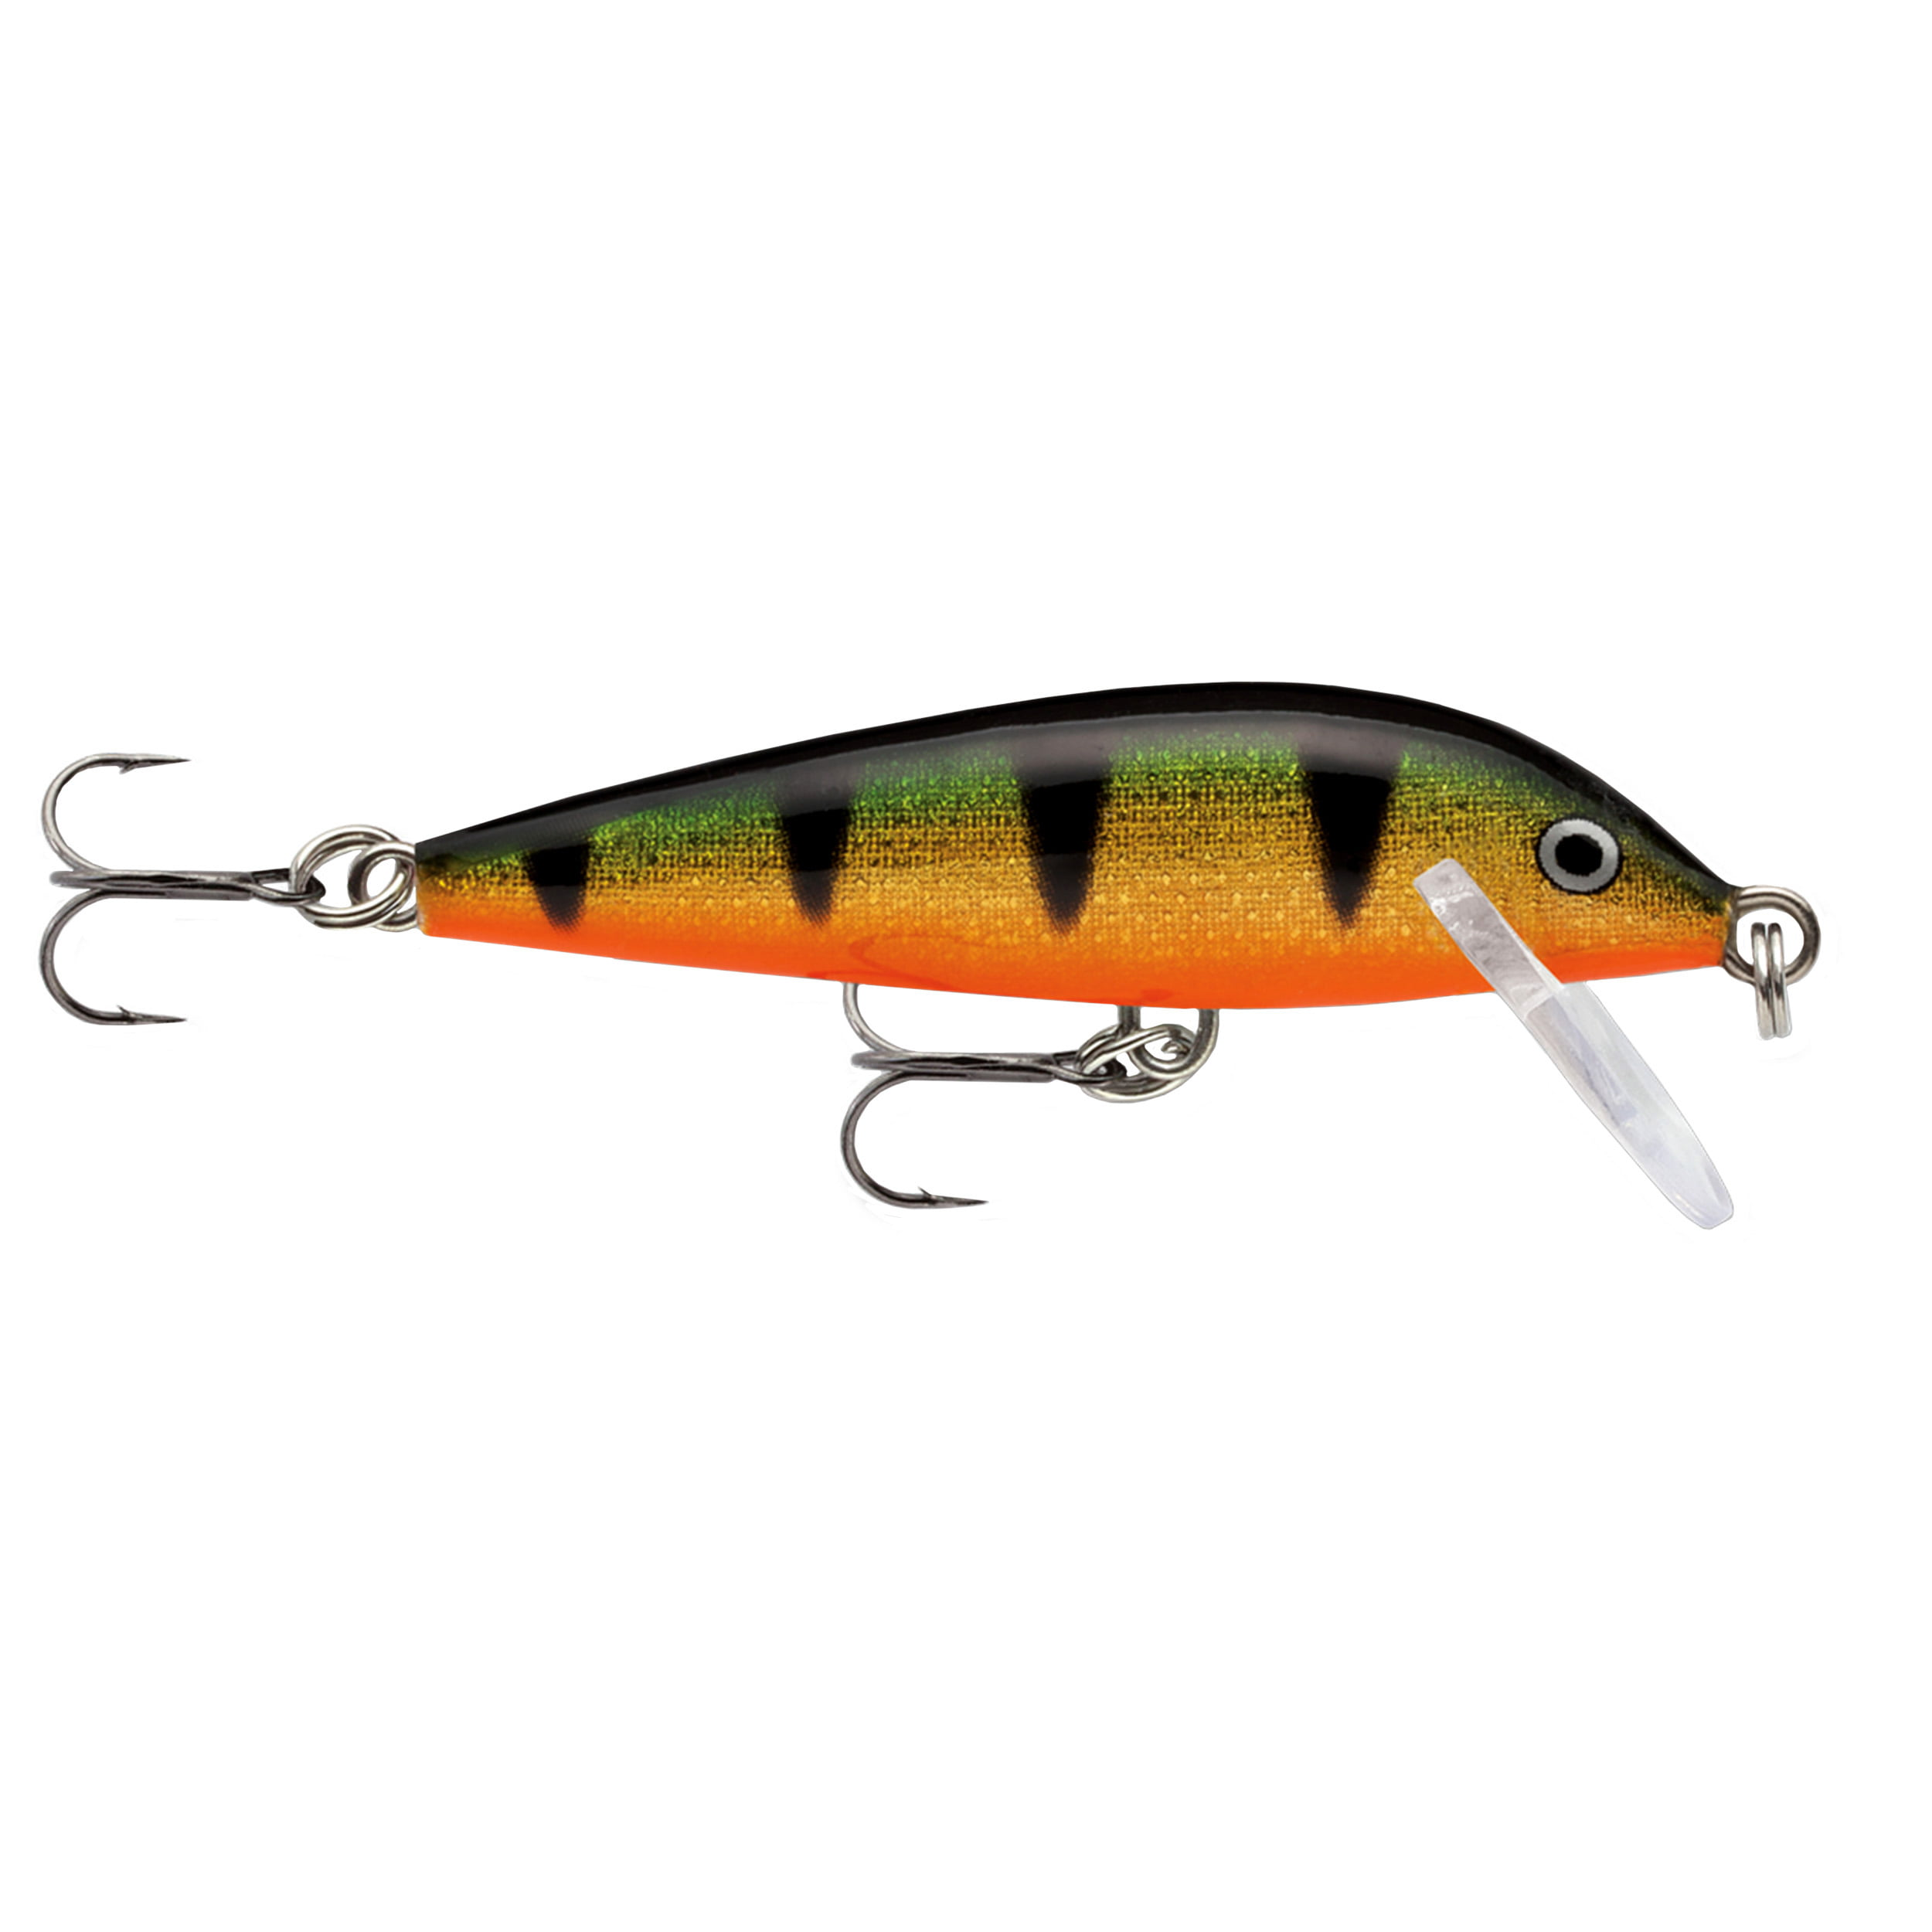 "Click here to buy Rapala CountDown Lure Size 07, 2 3 4"" Length, 5'-8' Depth, 2 Number 7 Hooks, Perch, Per 1 by Rapala."